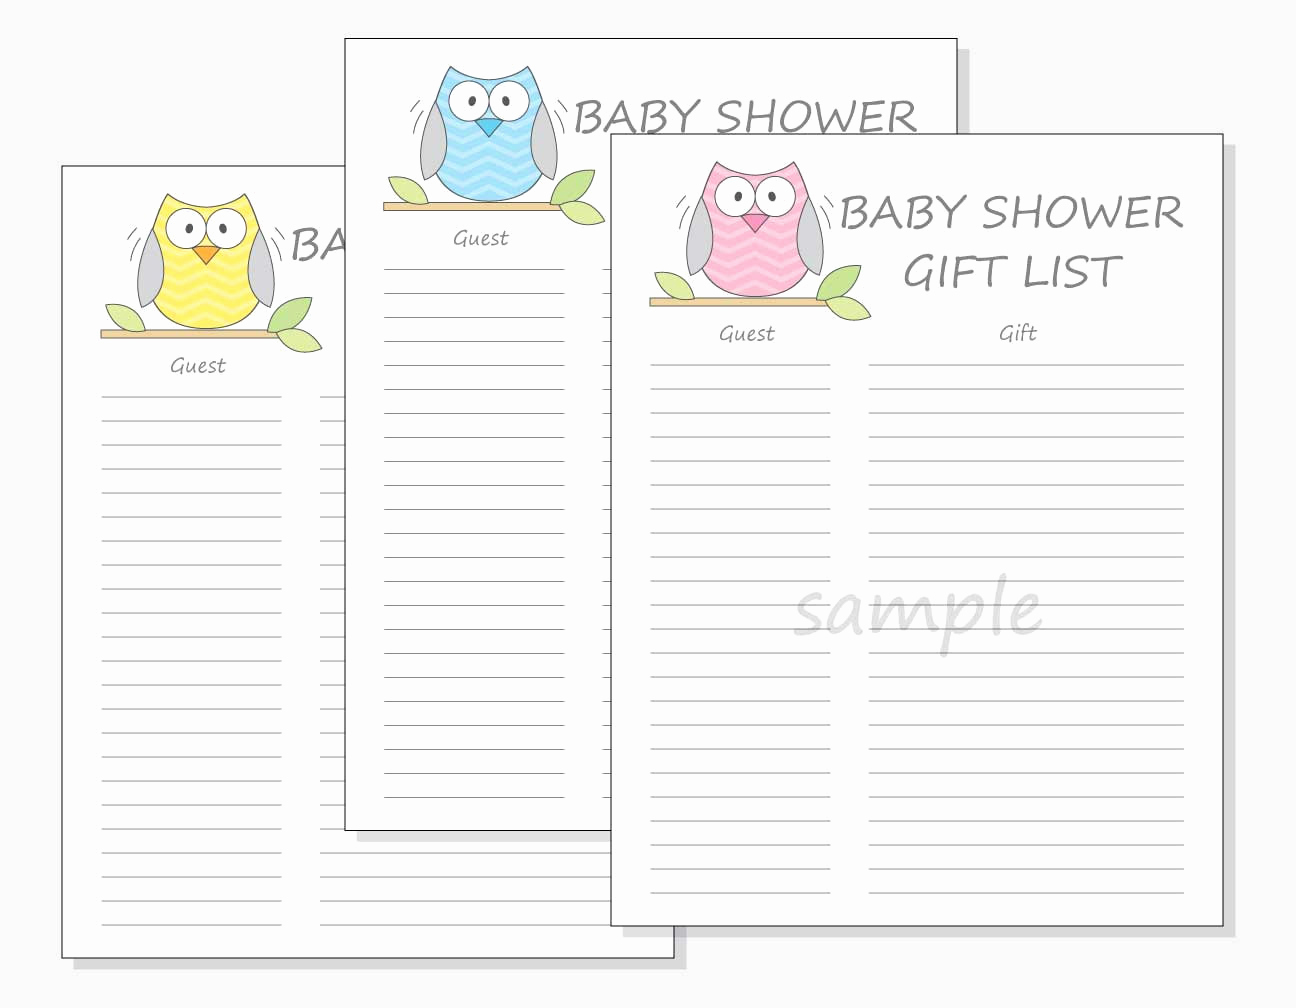 Baby Shower Gift Lists Lovely Diy Baby Shower Guest Gift List Printable Chevron Owl Design